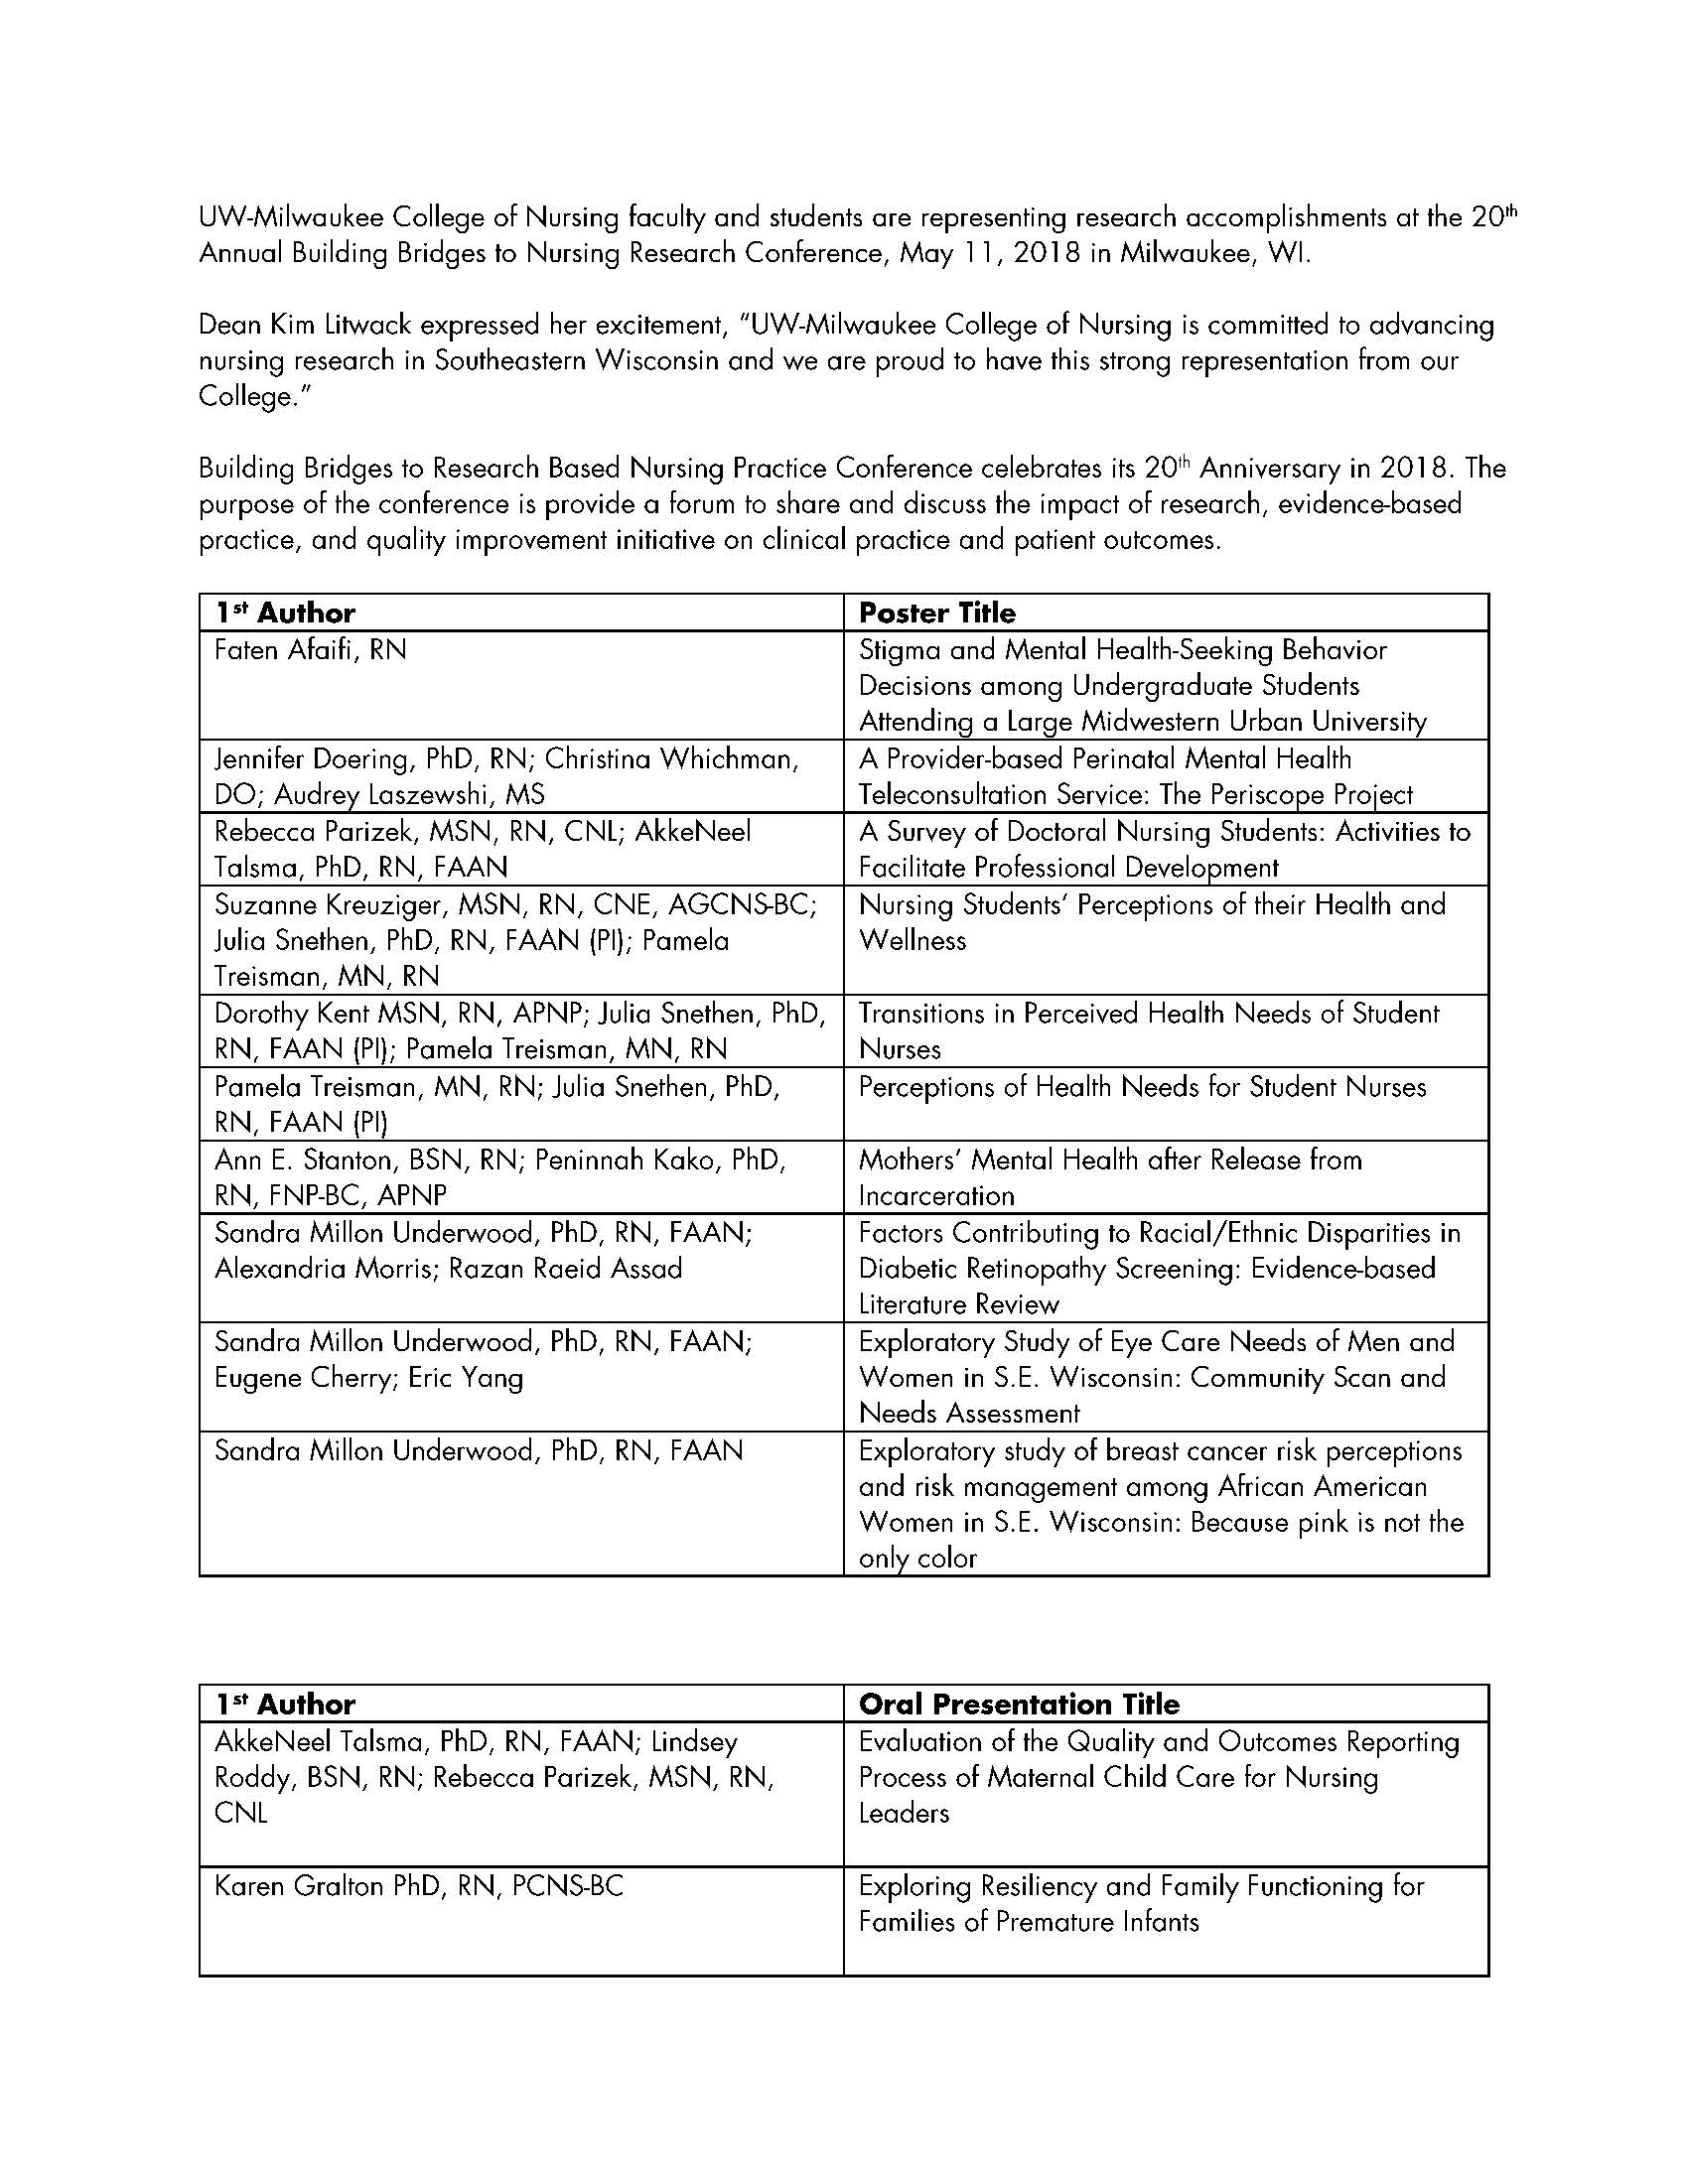 019 Nursing Research Paper Uwmweb Storycon 2018 Poster And Oral Authors Striking Pdf Sample Apa Format Example Proposal Full